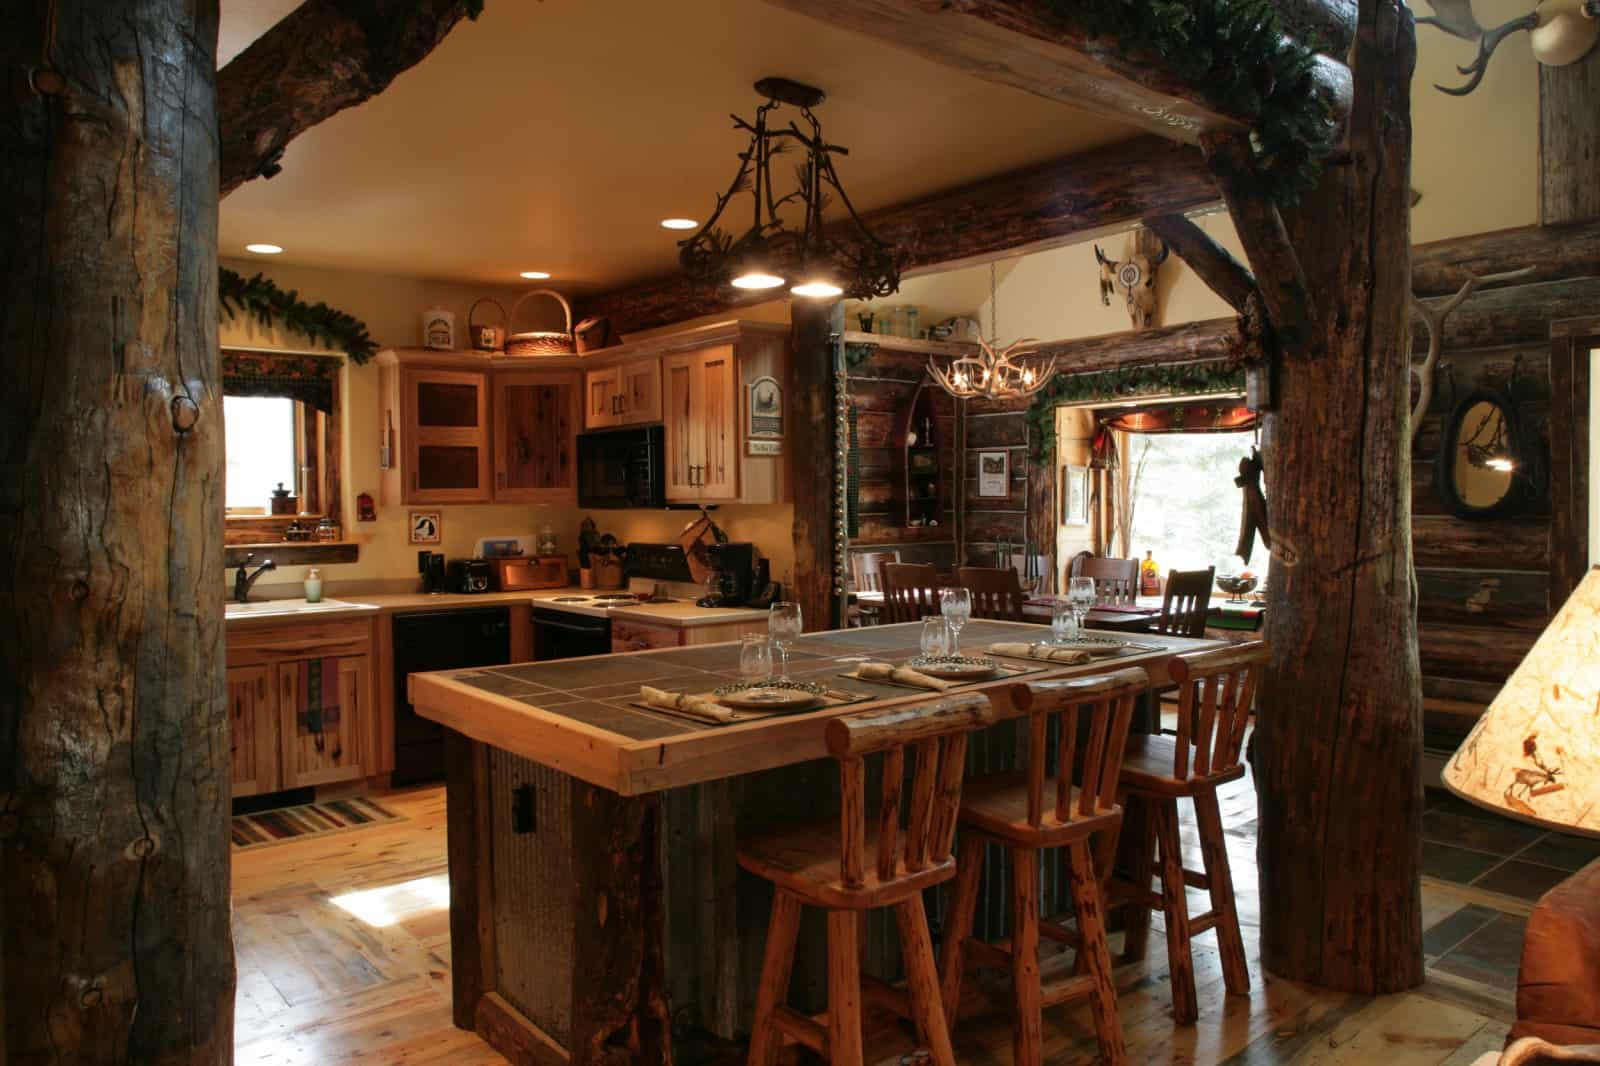 Interior design trends 2017 rustic kitchen decor house for Rustic lodge